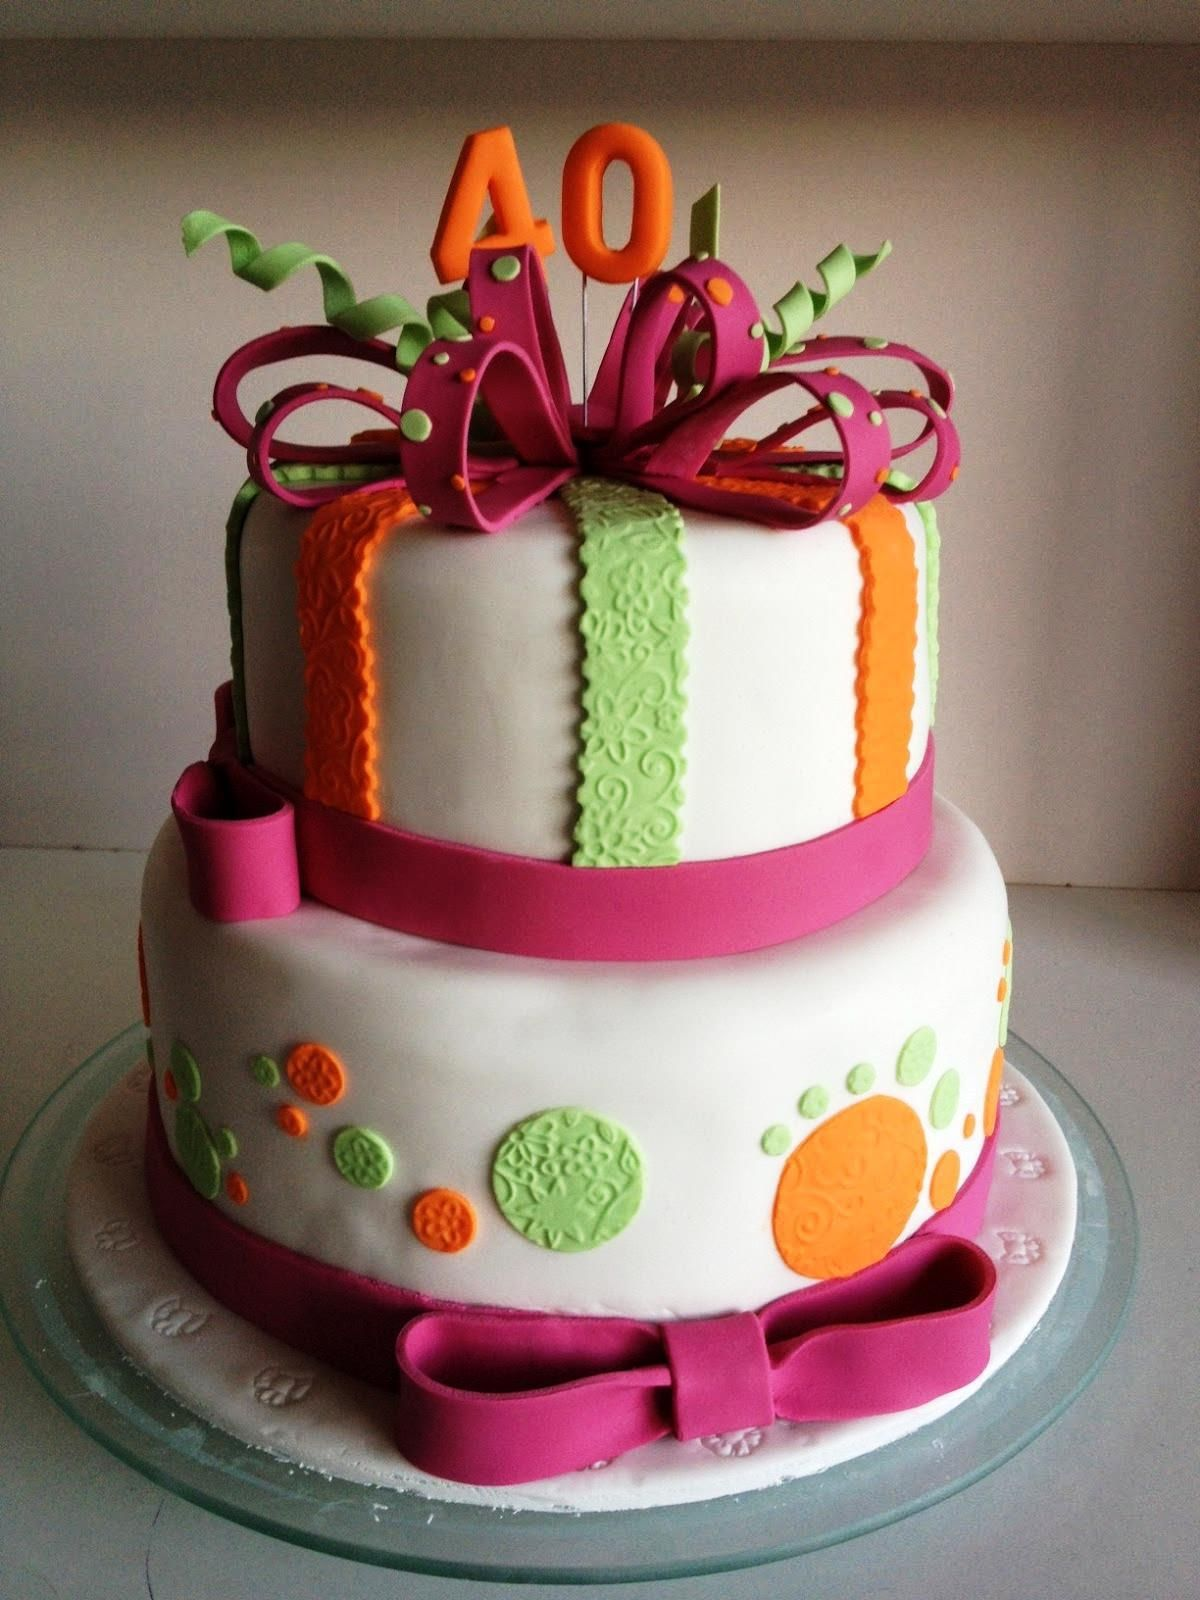 40th Birthday Cake Ideas and Recipes for Men Some Enjoyable